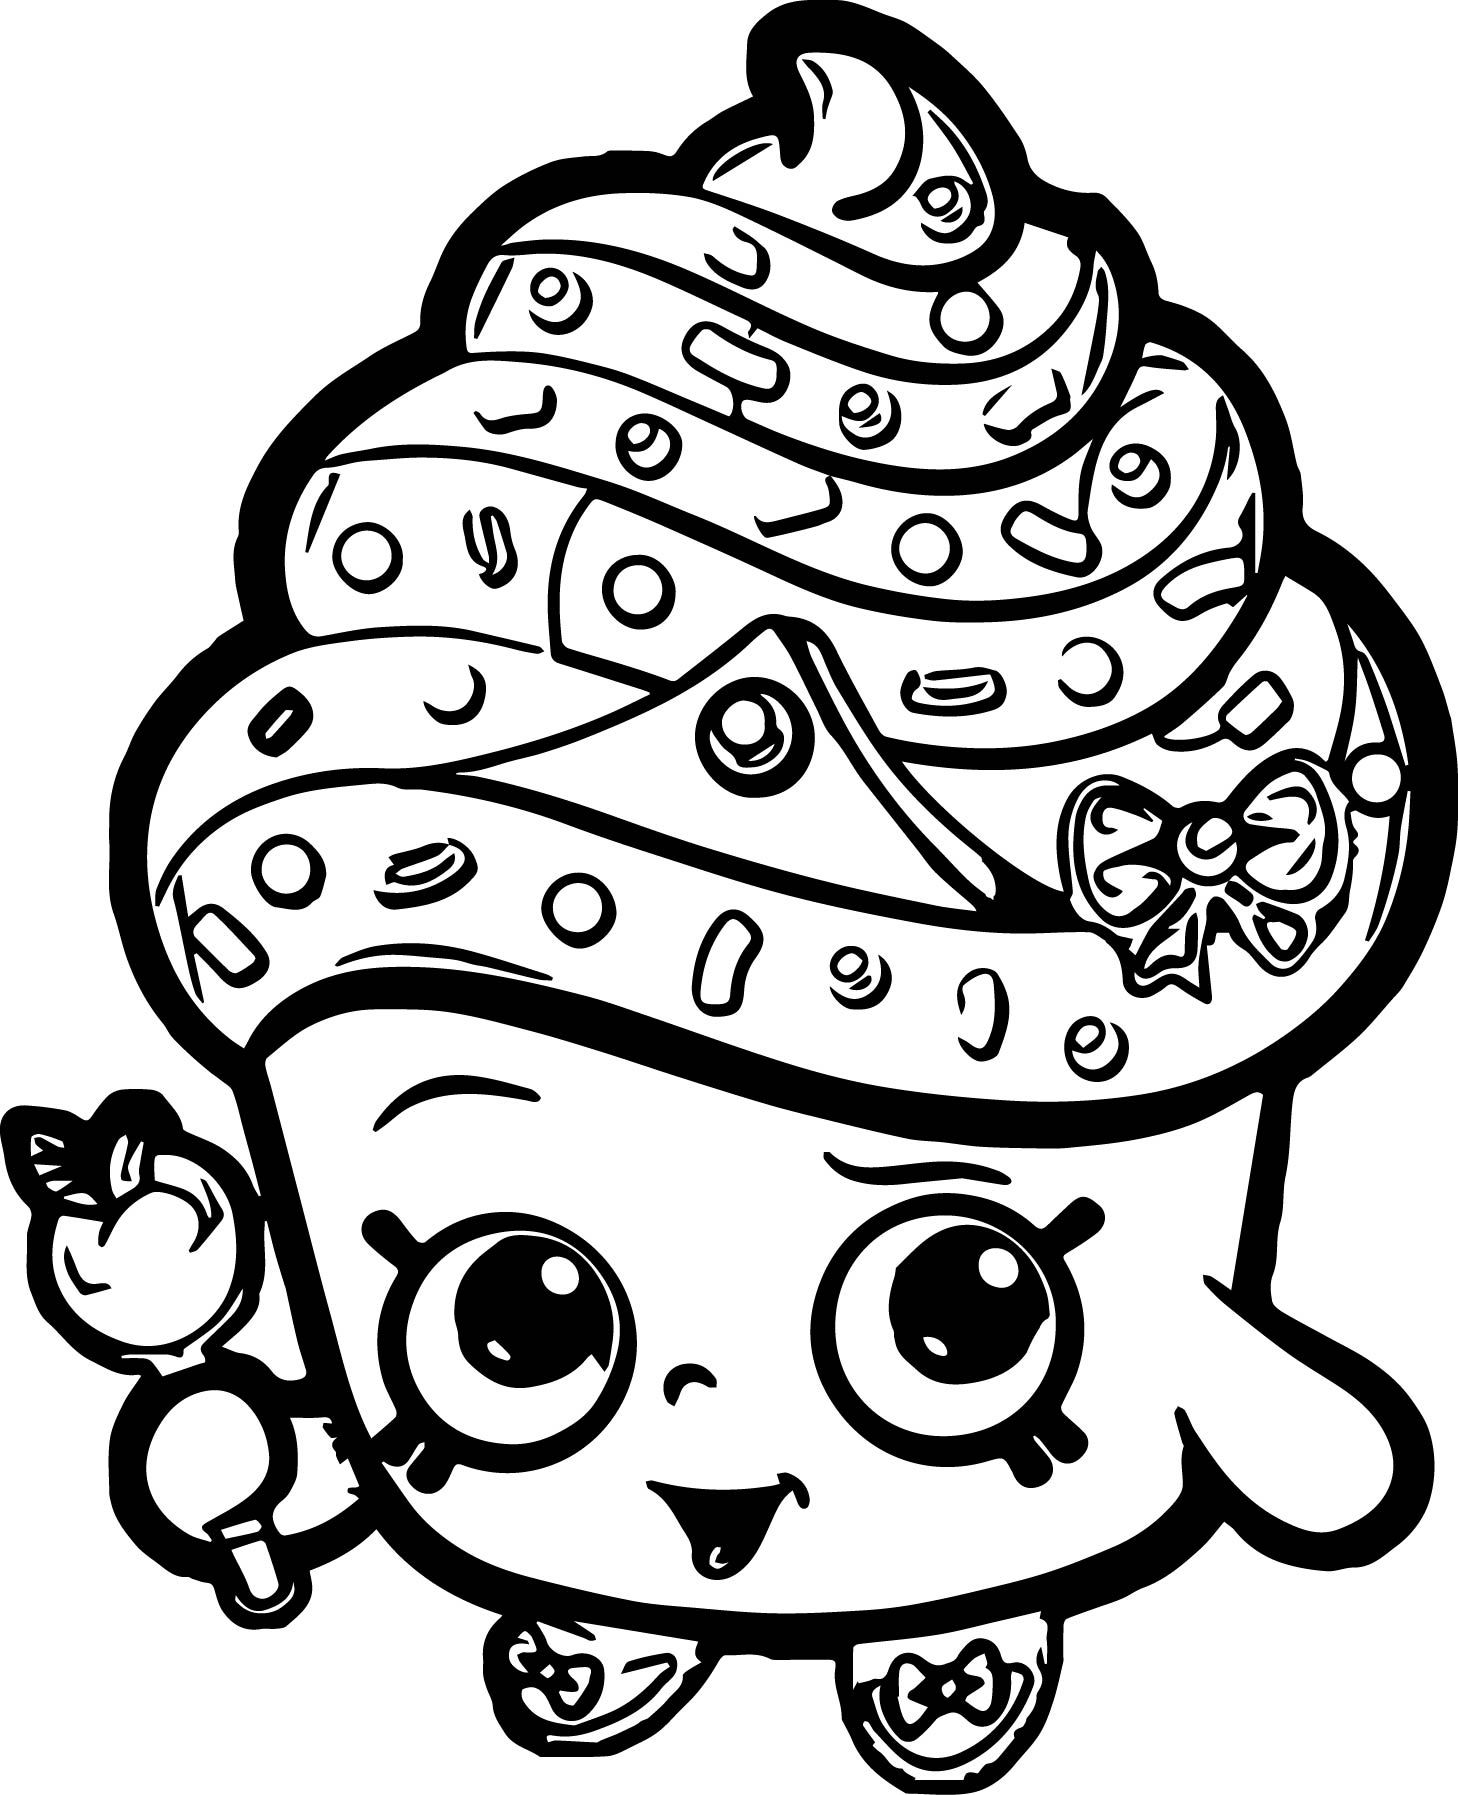 Cool cupcake queen shopkins coloring page